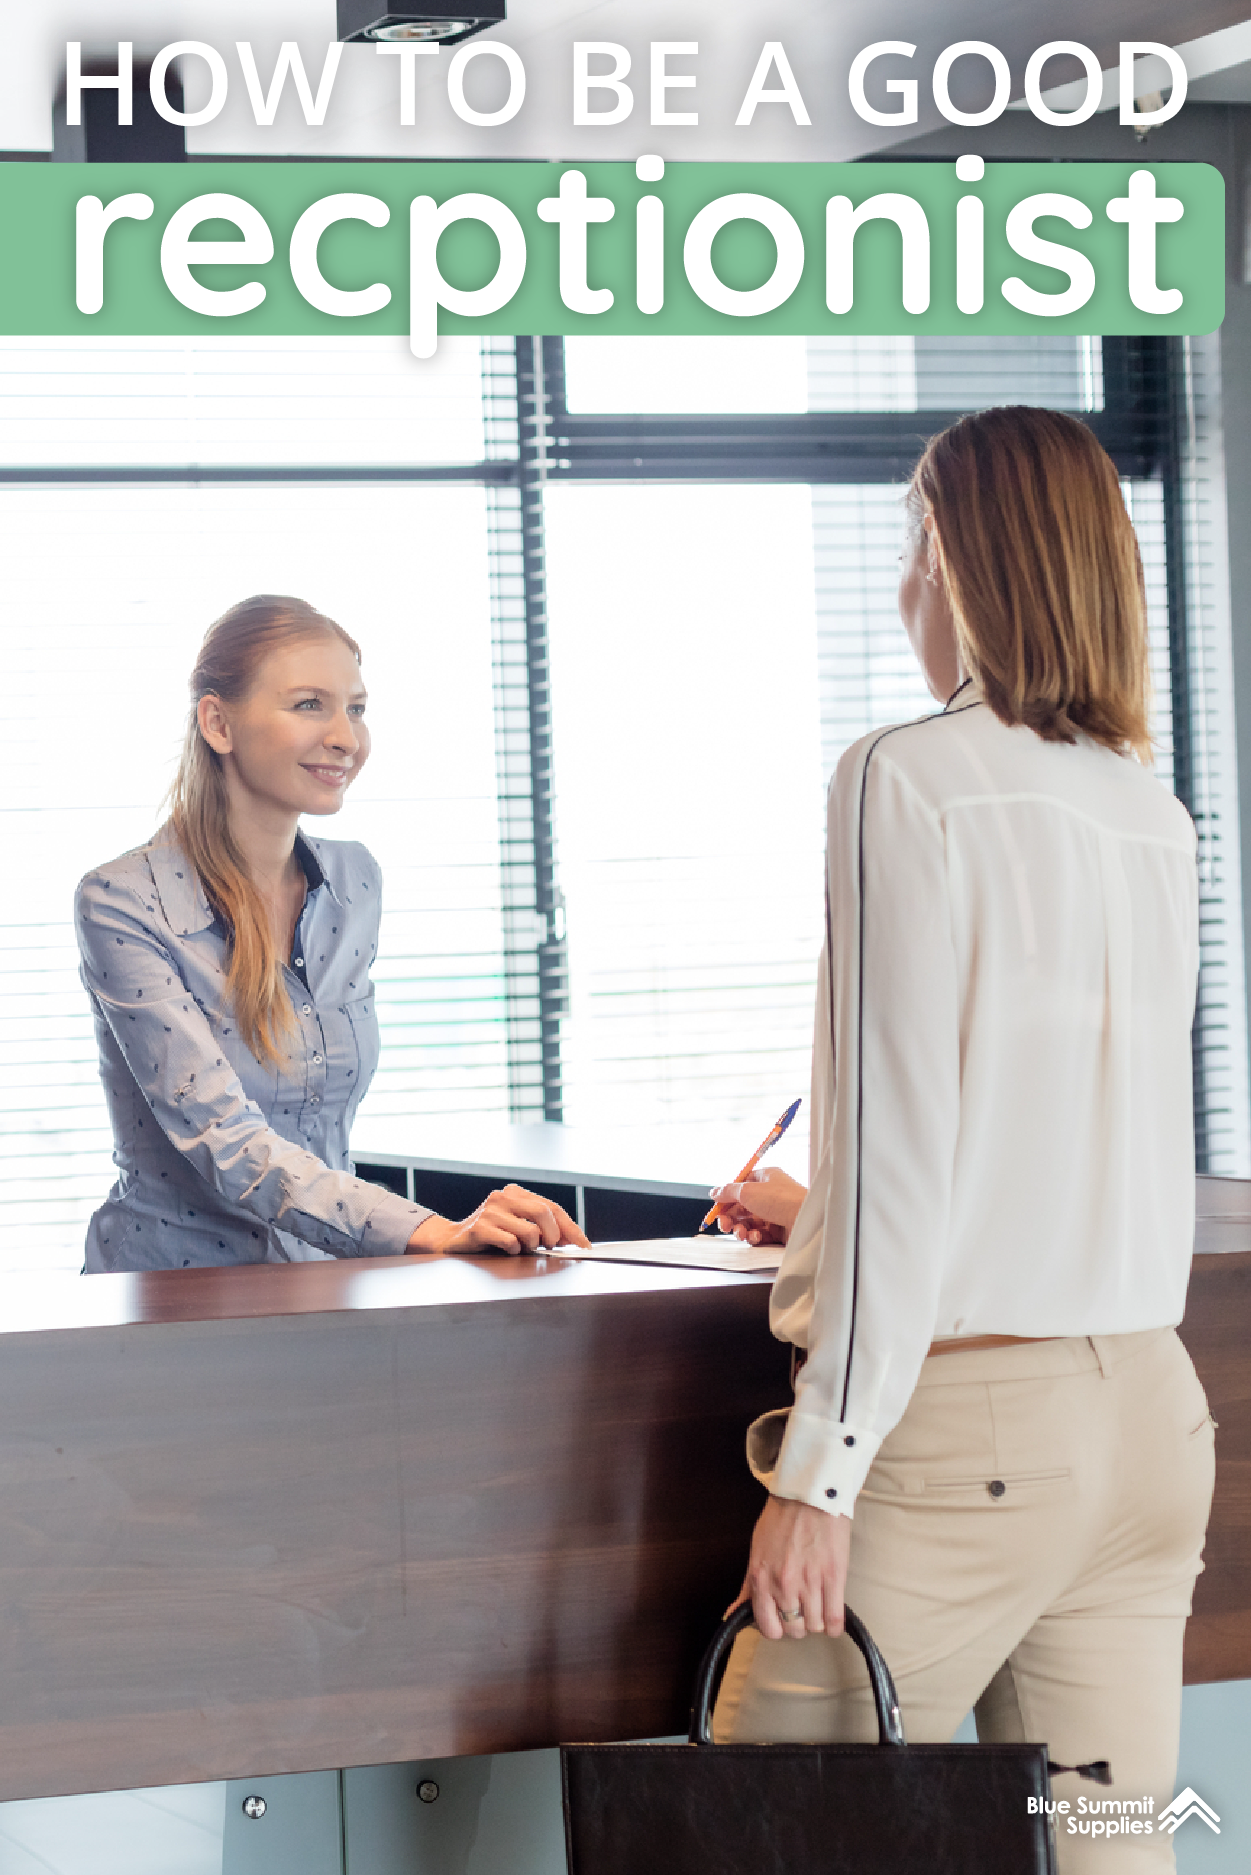 How To Be A Good Receptionist Tips And Tricks Receptionist Jobs Office Administration Receptionist